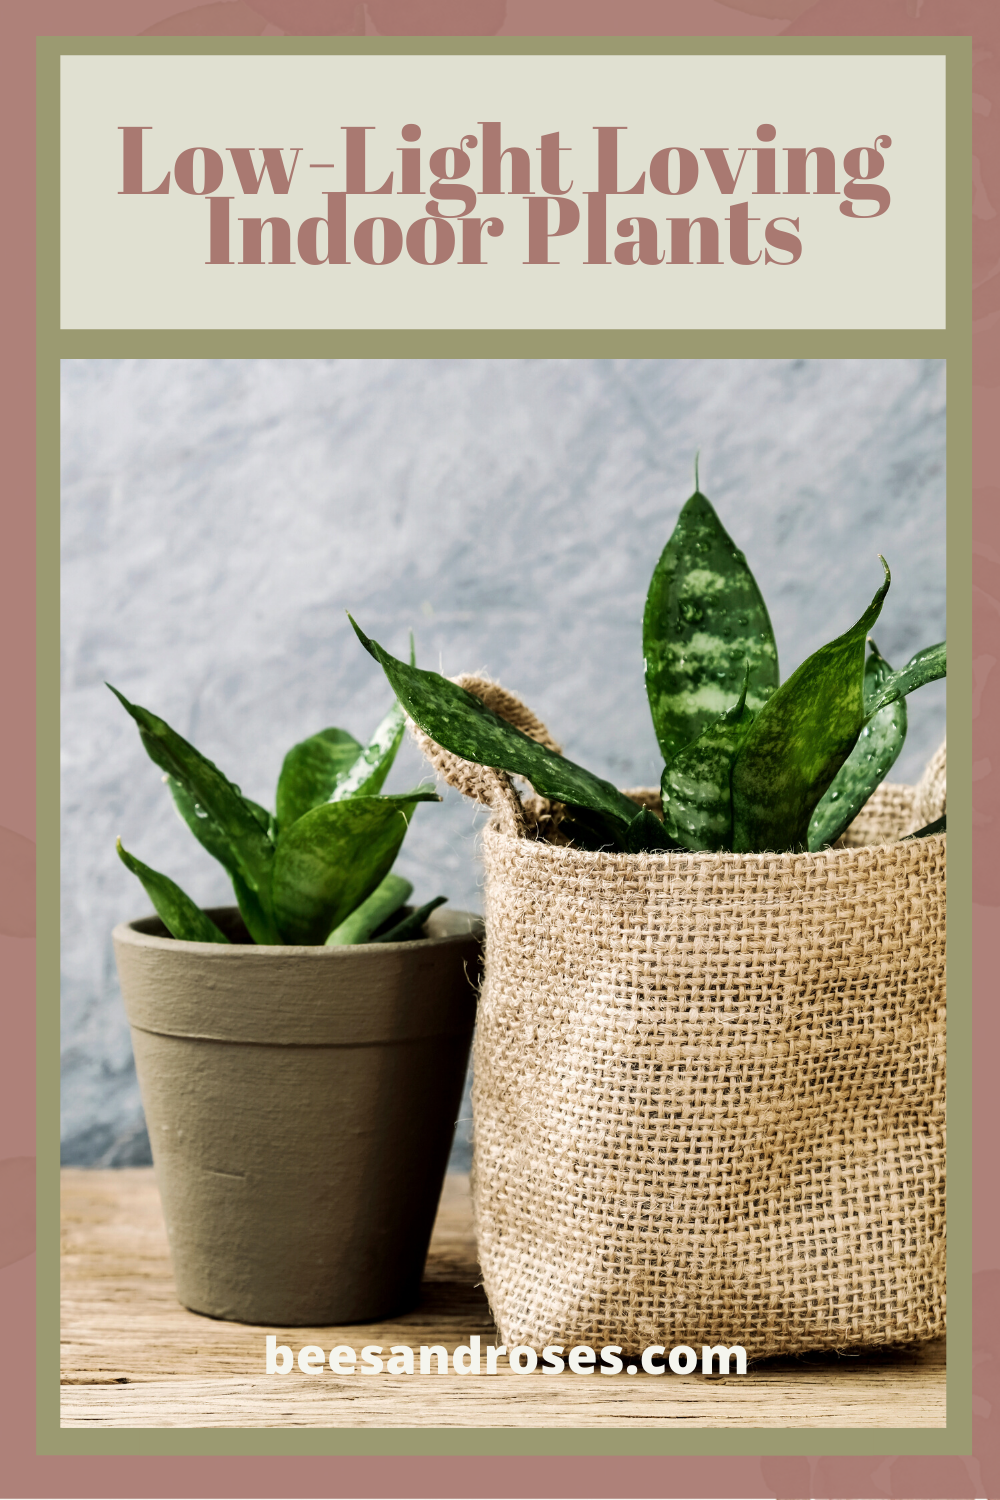 Most plants need lots of light. But, if you do not have a lot of windows or a garden room, there are still a lot of options for you. Read this post to learn about low light loving indoor plants. #lowlovingindoorplants #houseplants #beesandrosesblog